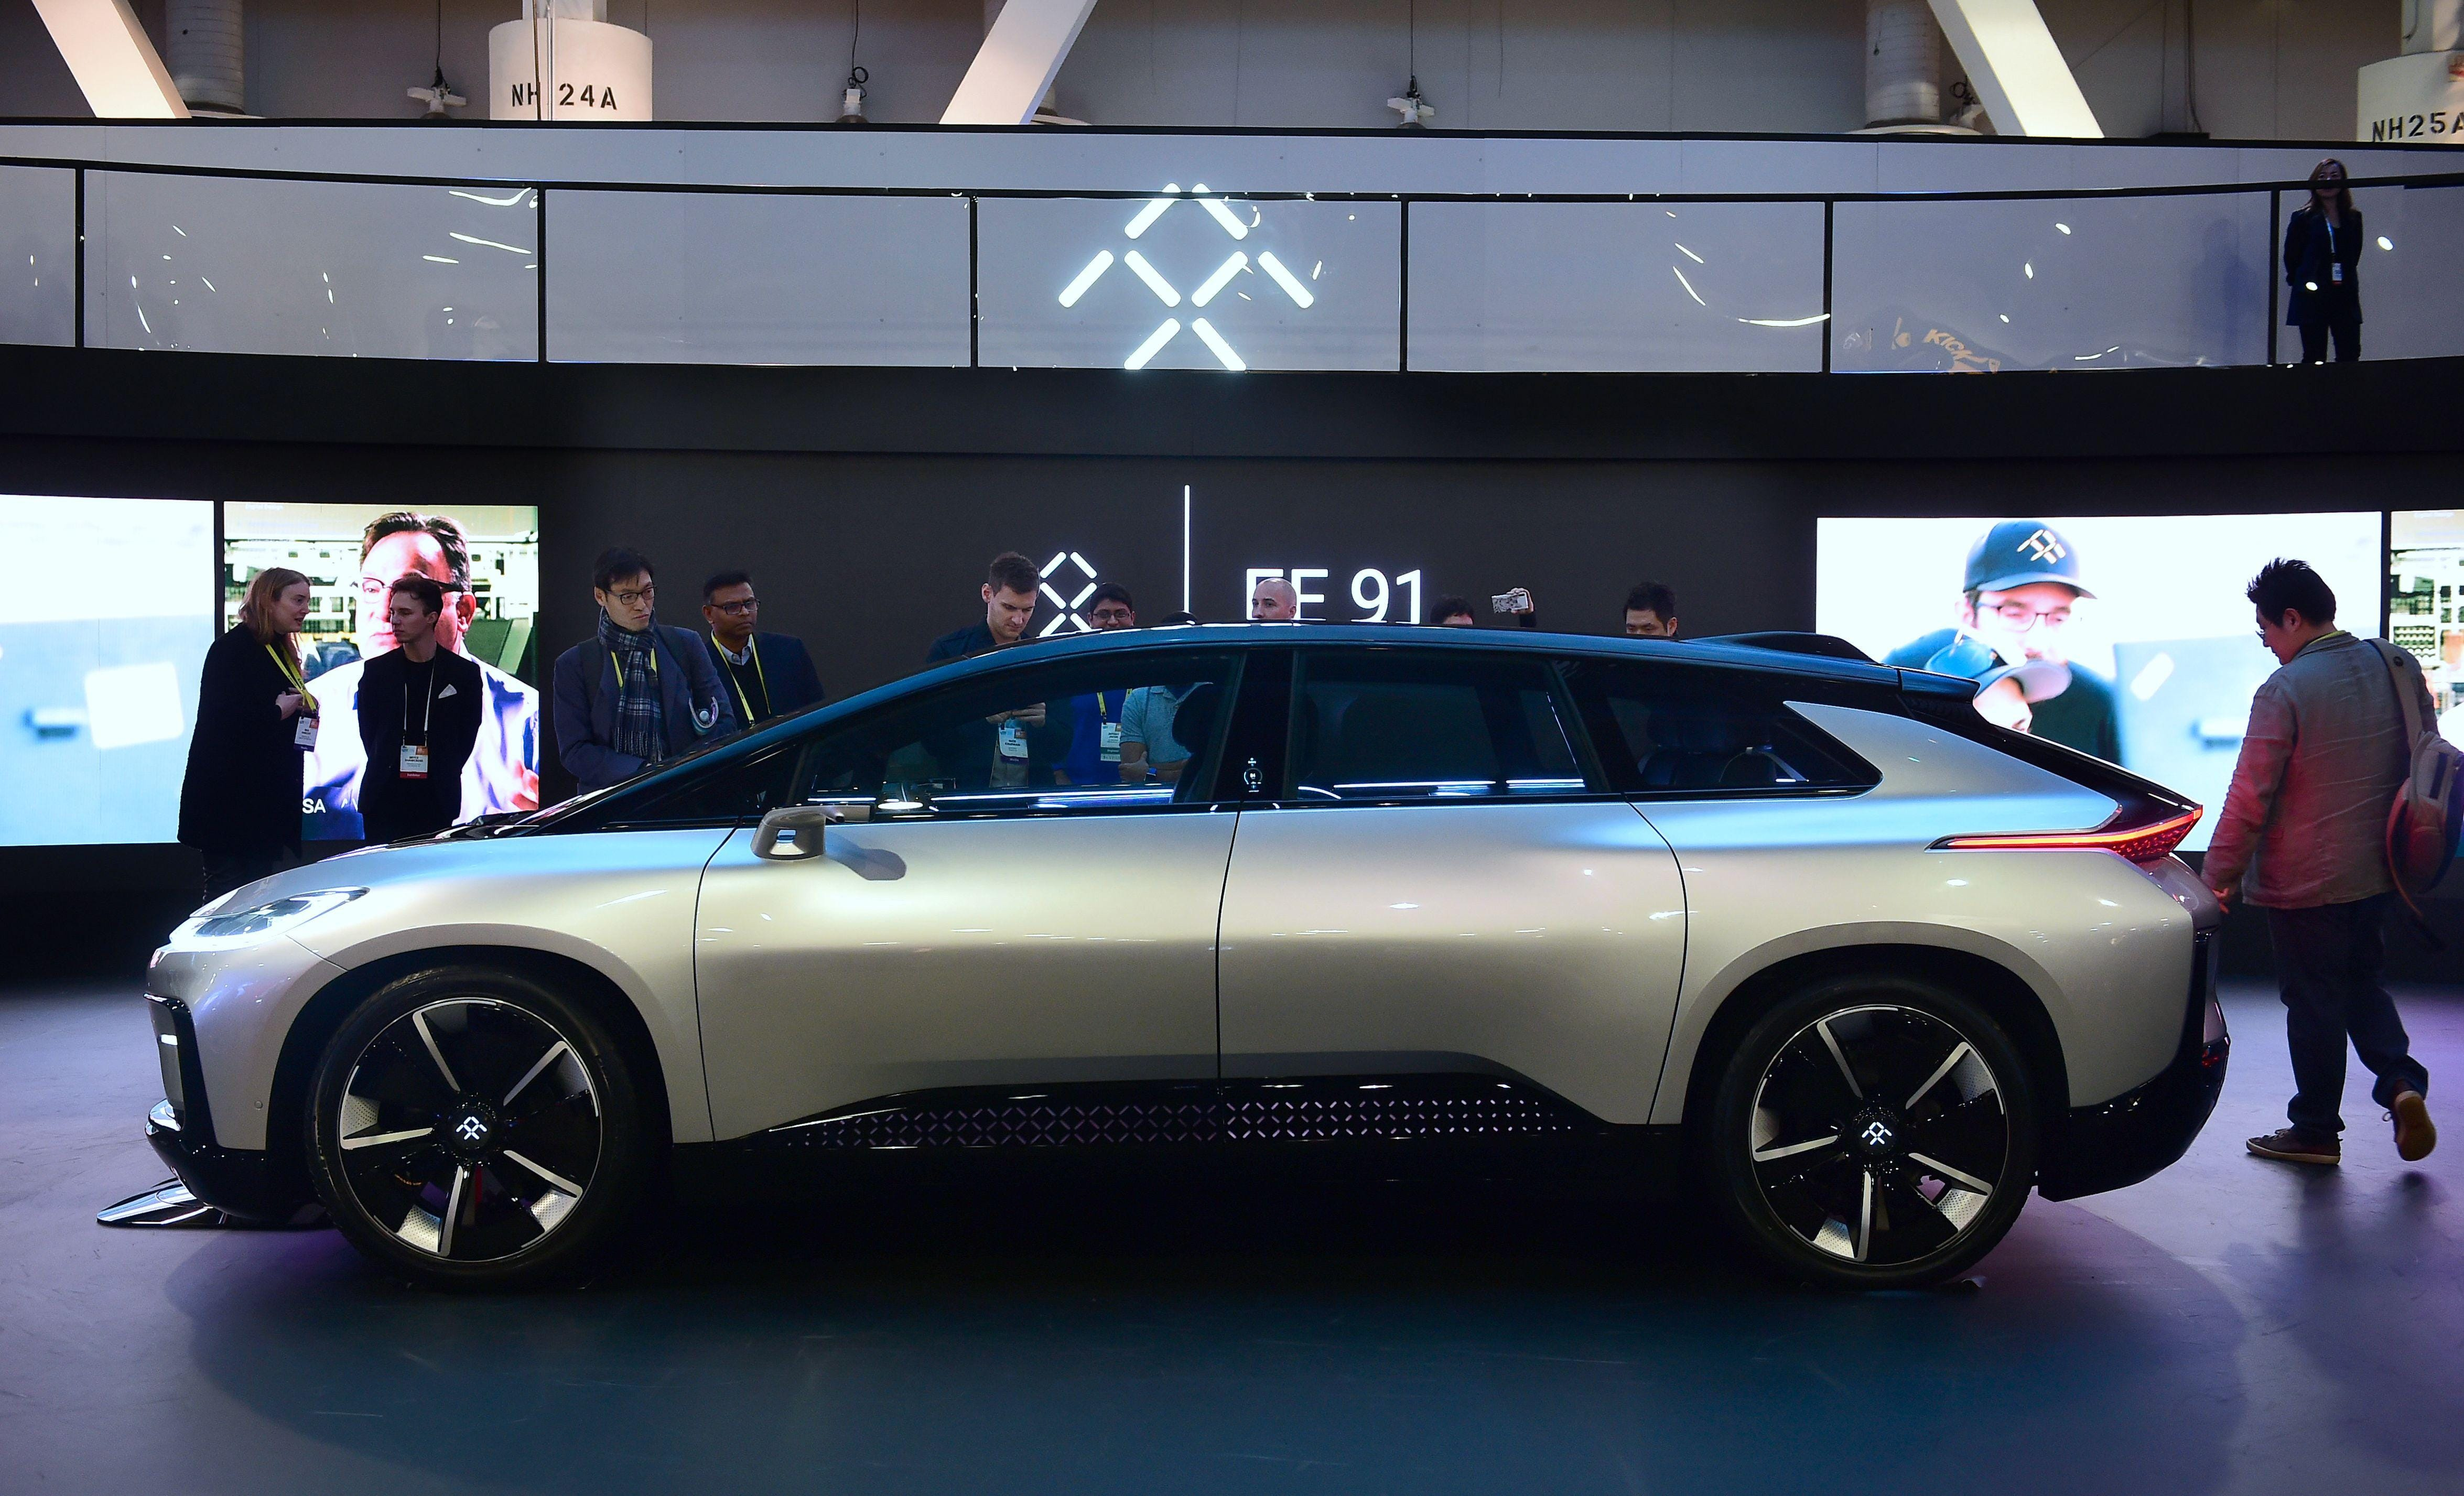 Discussion on this topic: Faraday Future is looking for an emergency , faraday-future-is-looking-for-an-emergency/